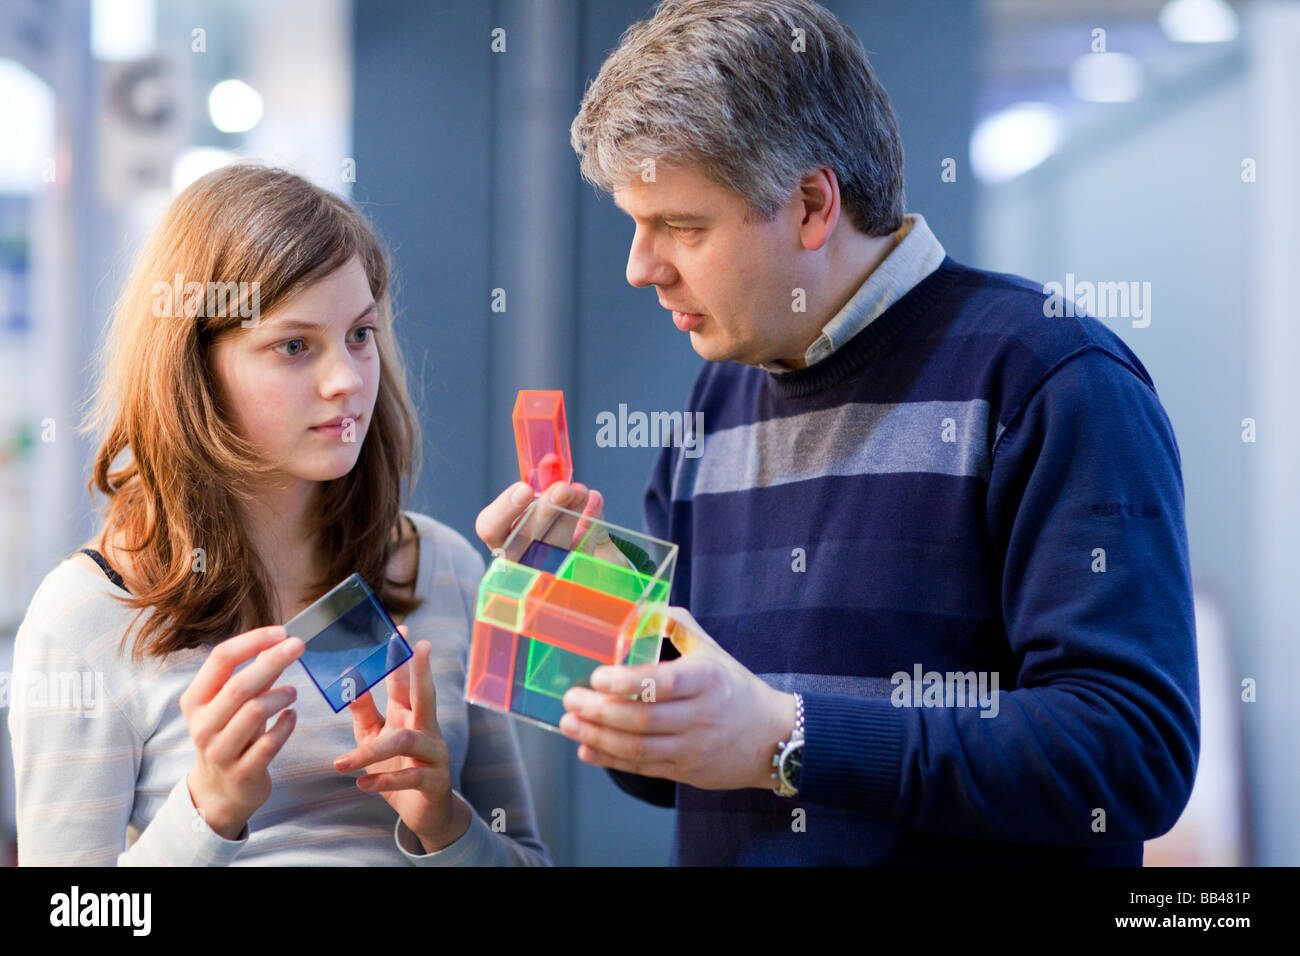 Student and teacher at geometry class - Stock Image